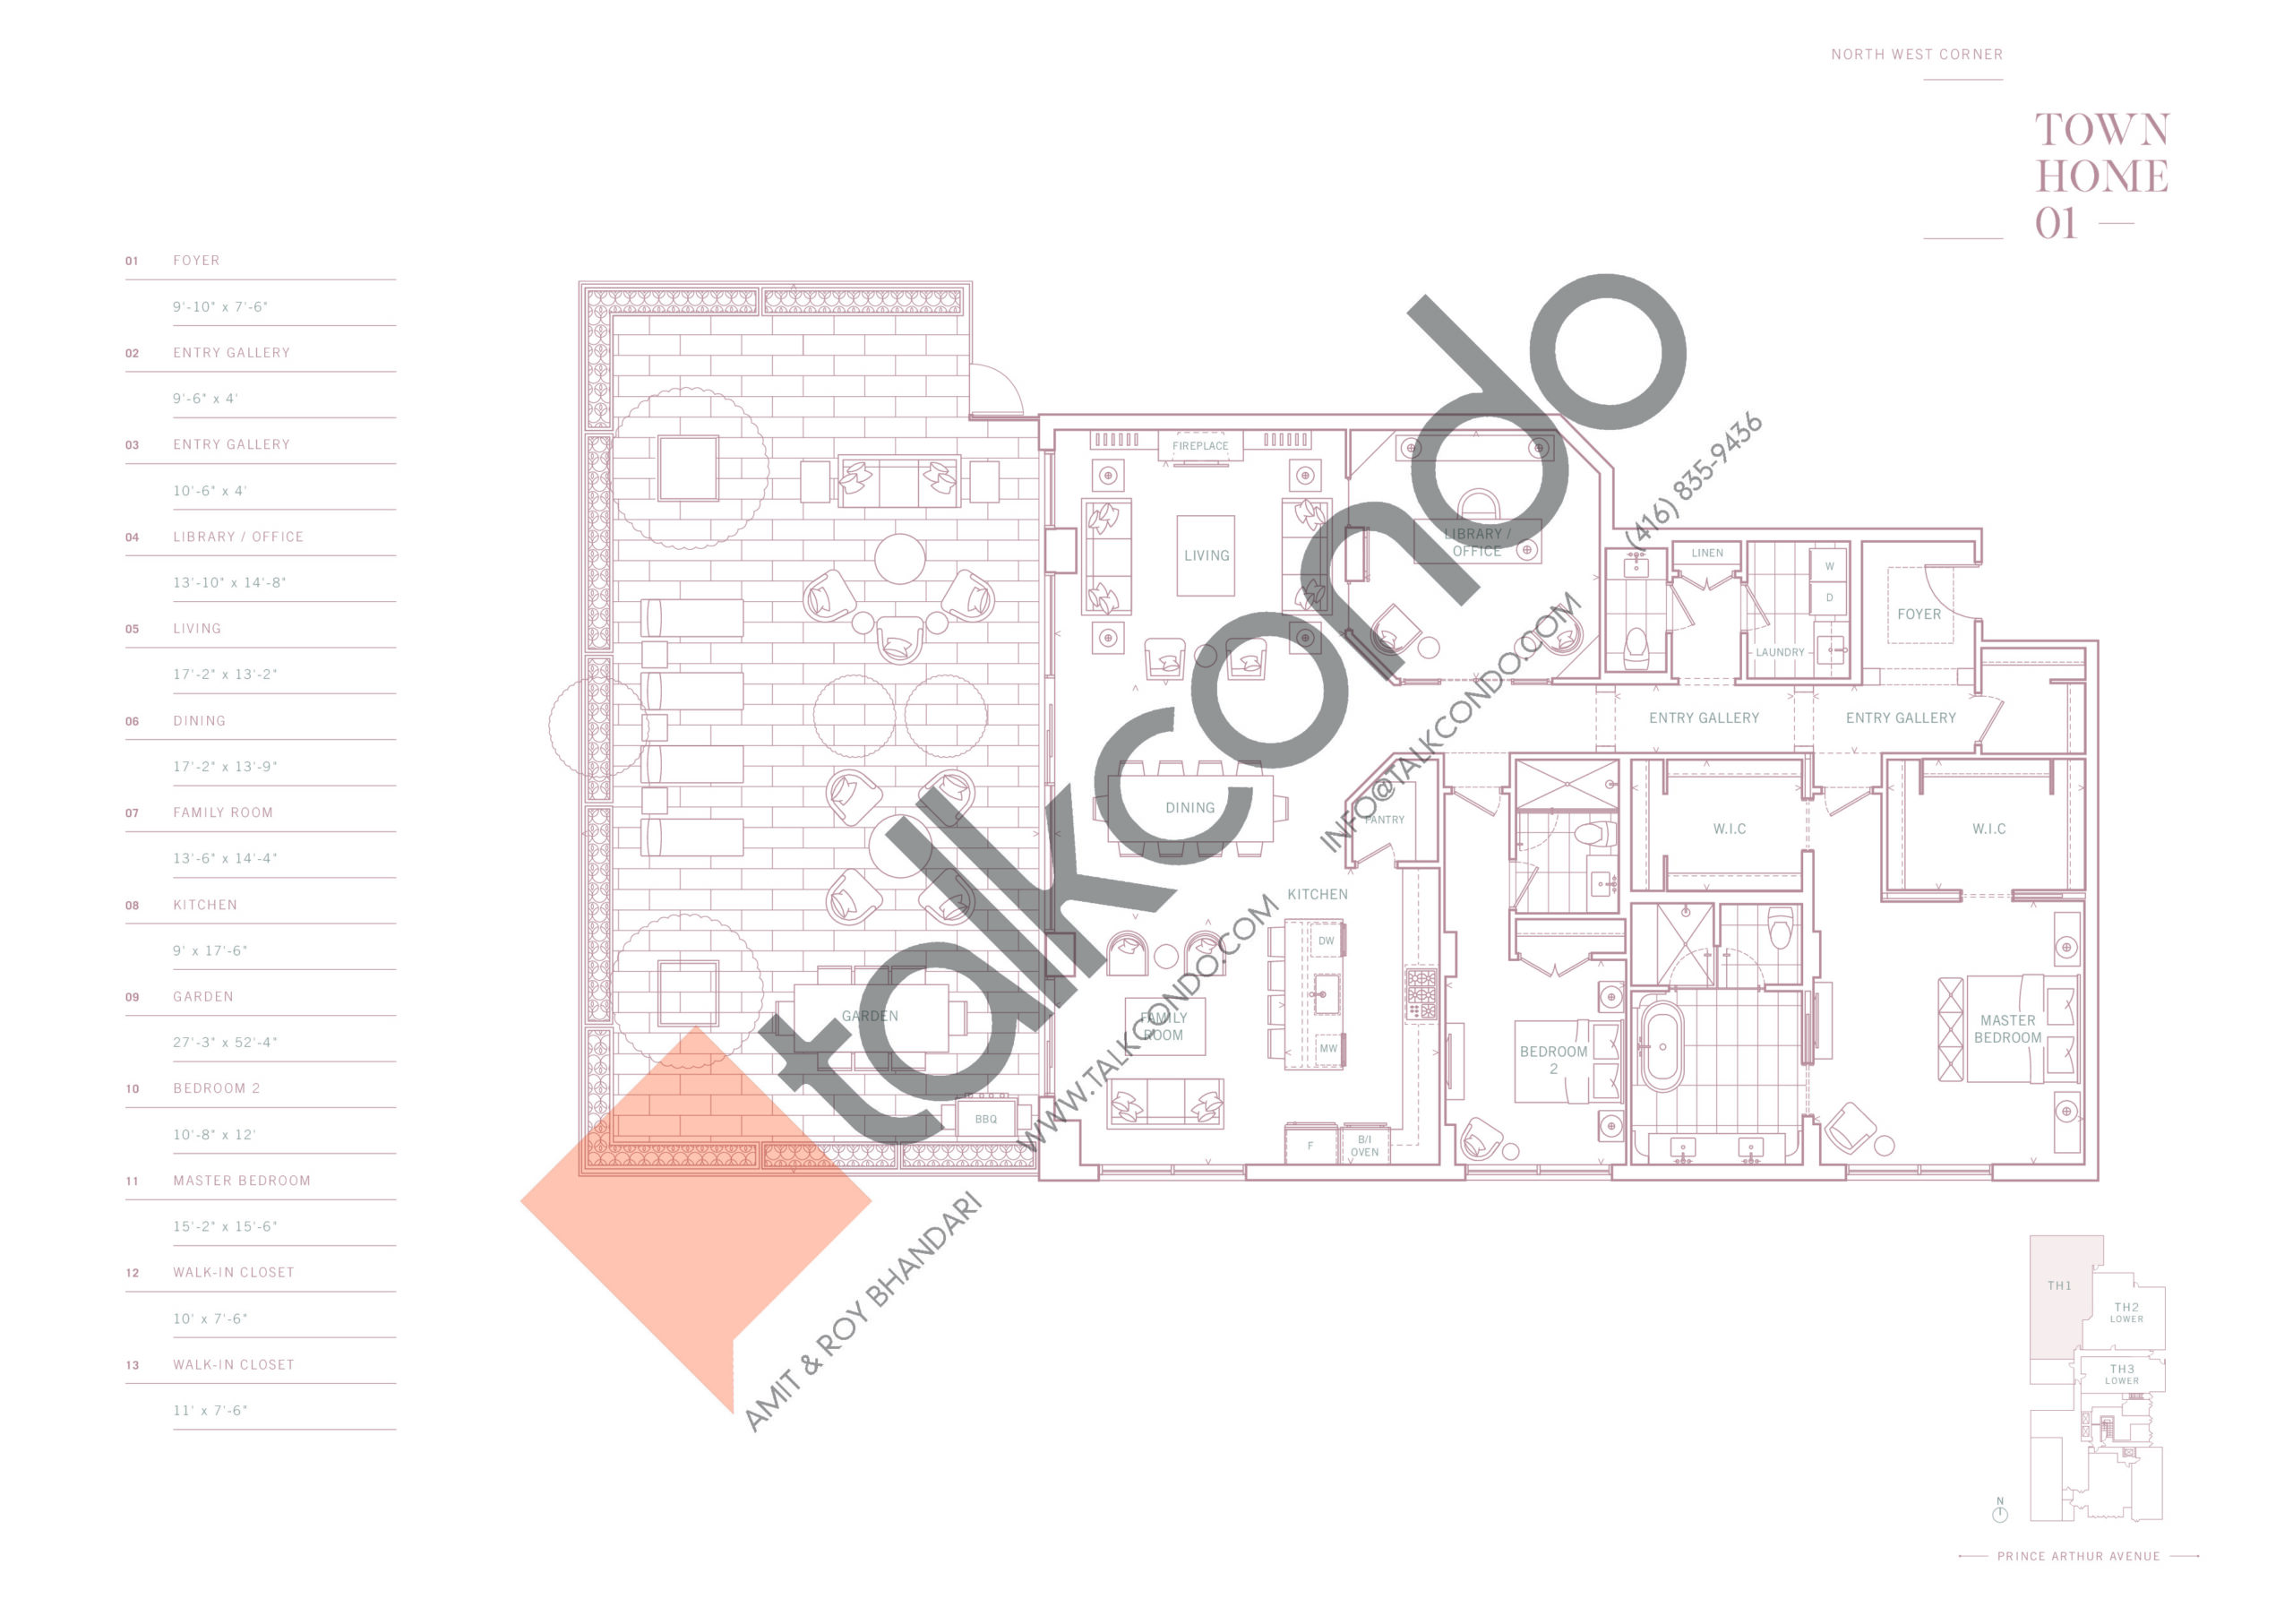 Townhome 01 Floor Plan at 10 Prince Arthur Condos - 2550 sq.ft